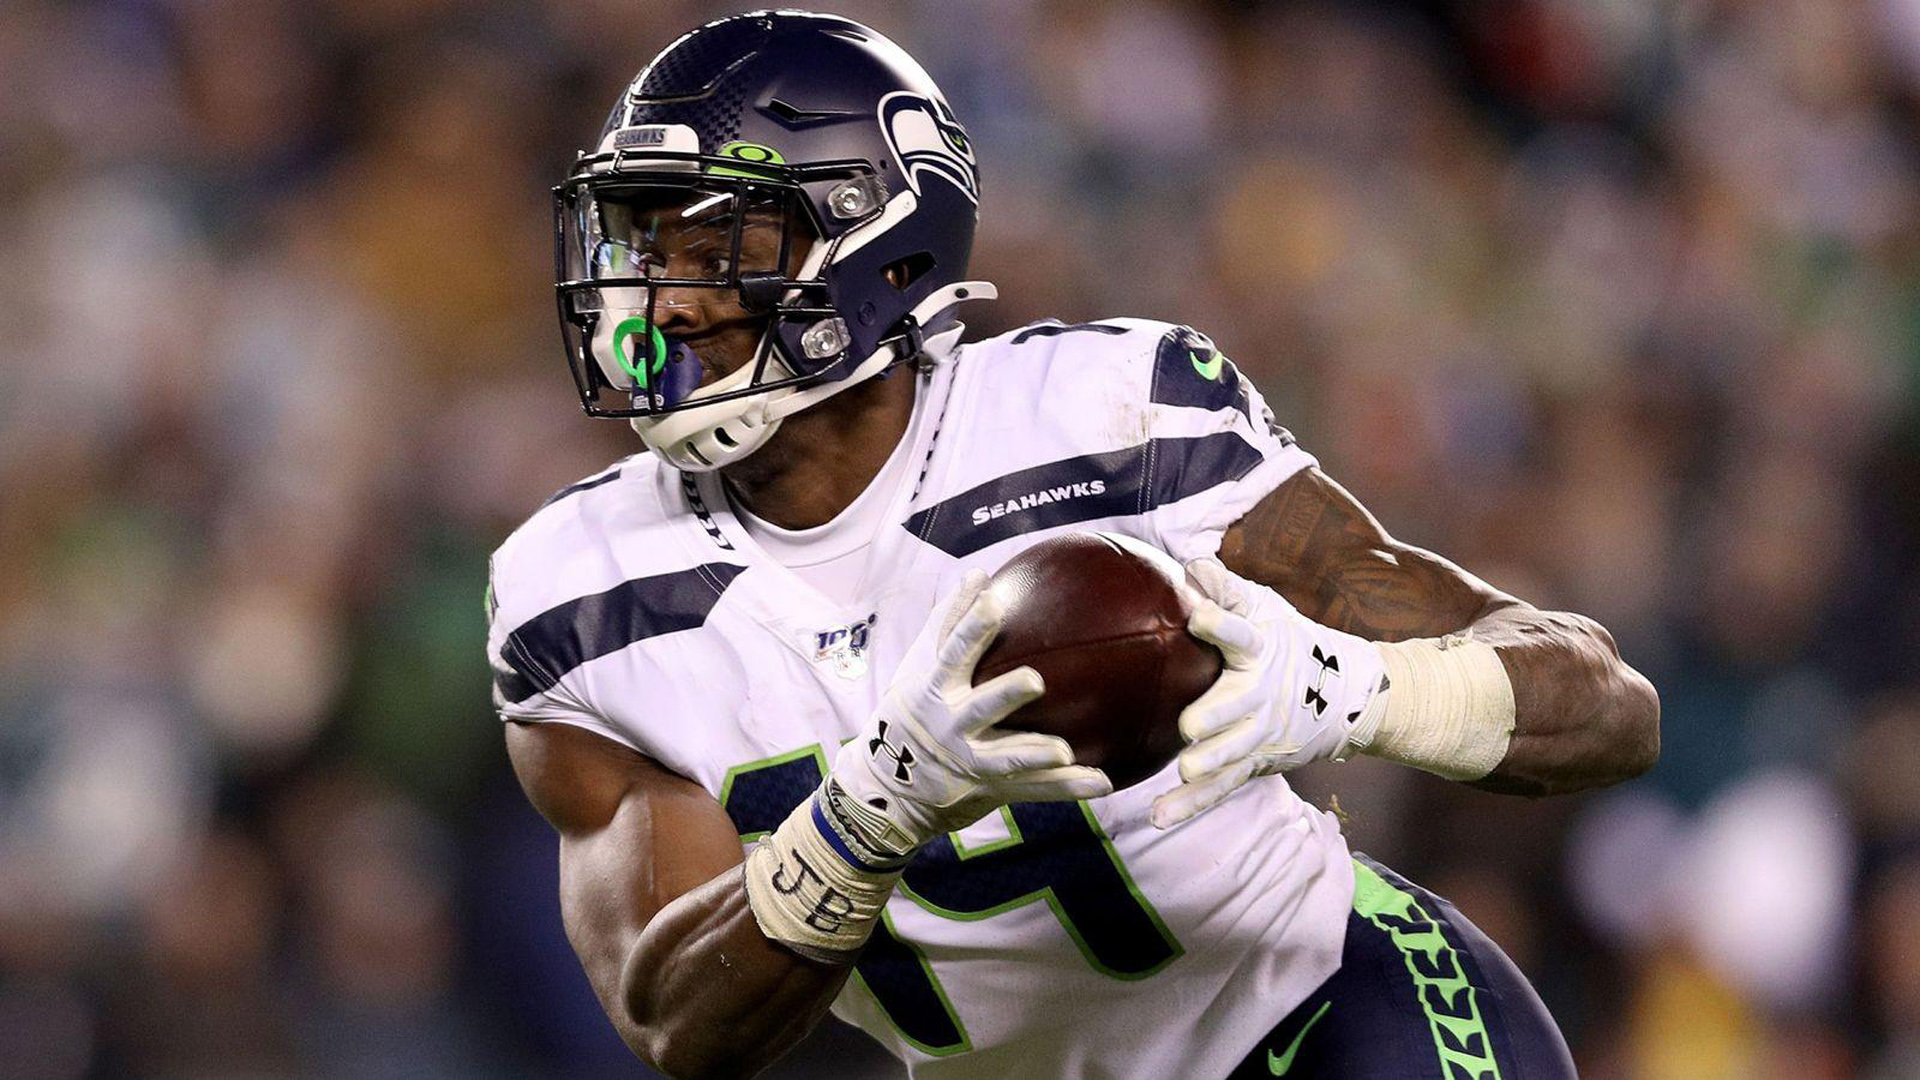 Download Metcalf With Football Is Wearing White Seahawks Sports Dress In Blur Background Hd Dk Metcalf